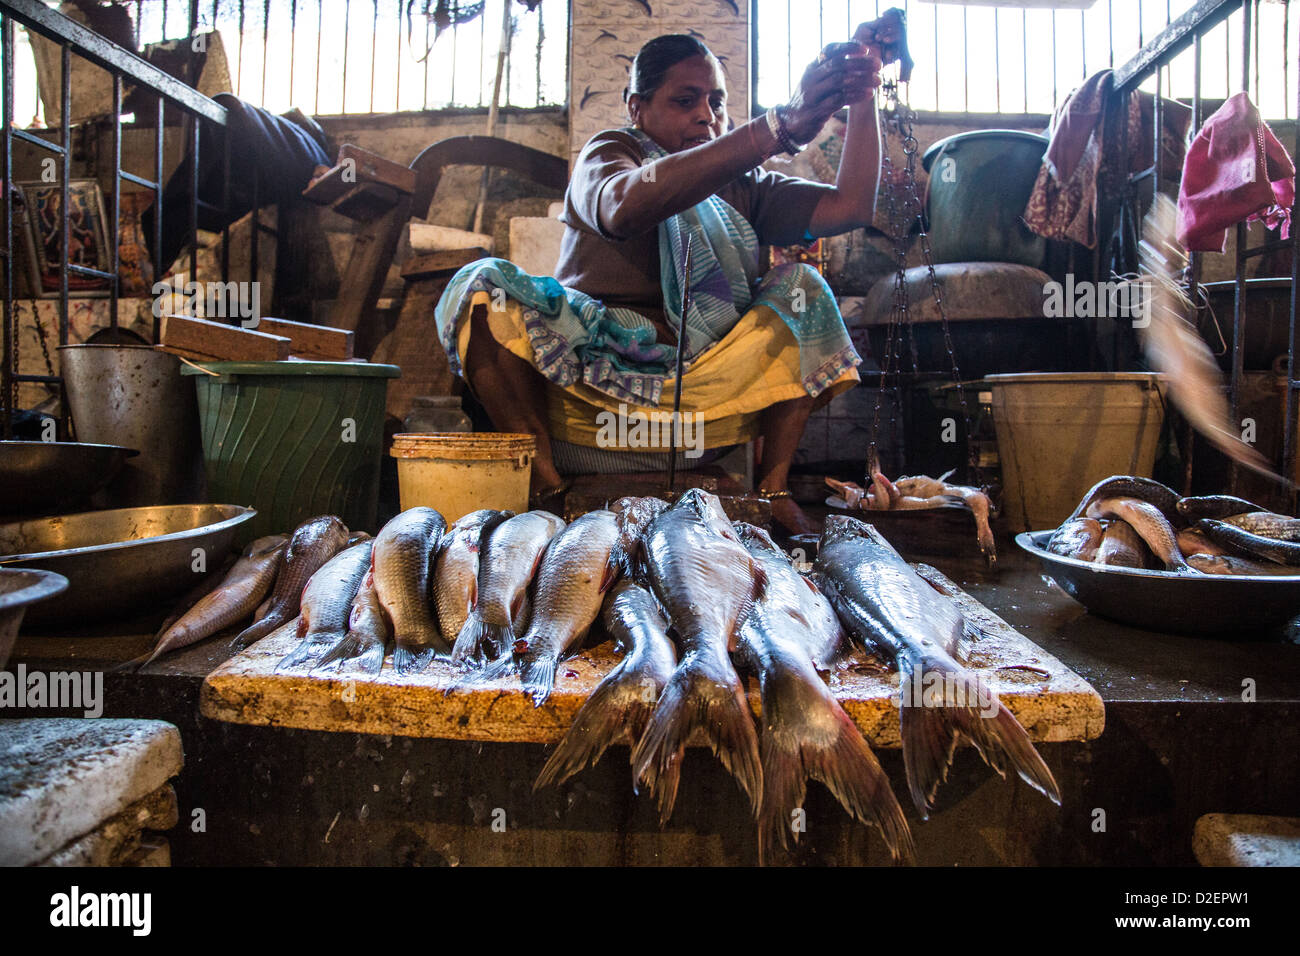 Fish market in ahmedabad gujarat india stock photo for Phil s fish market eatery